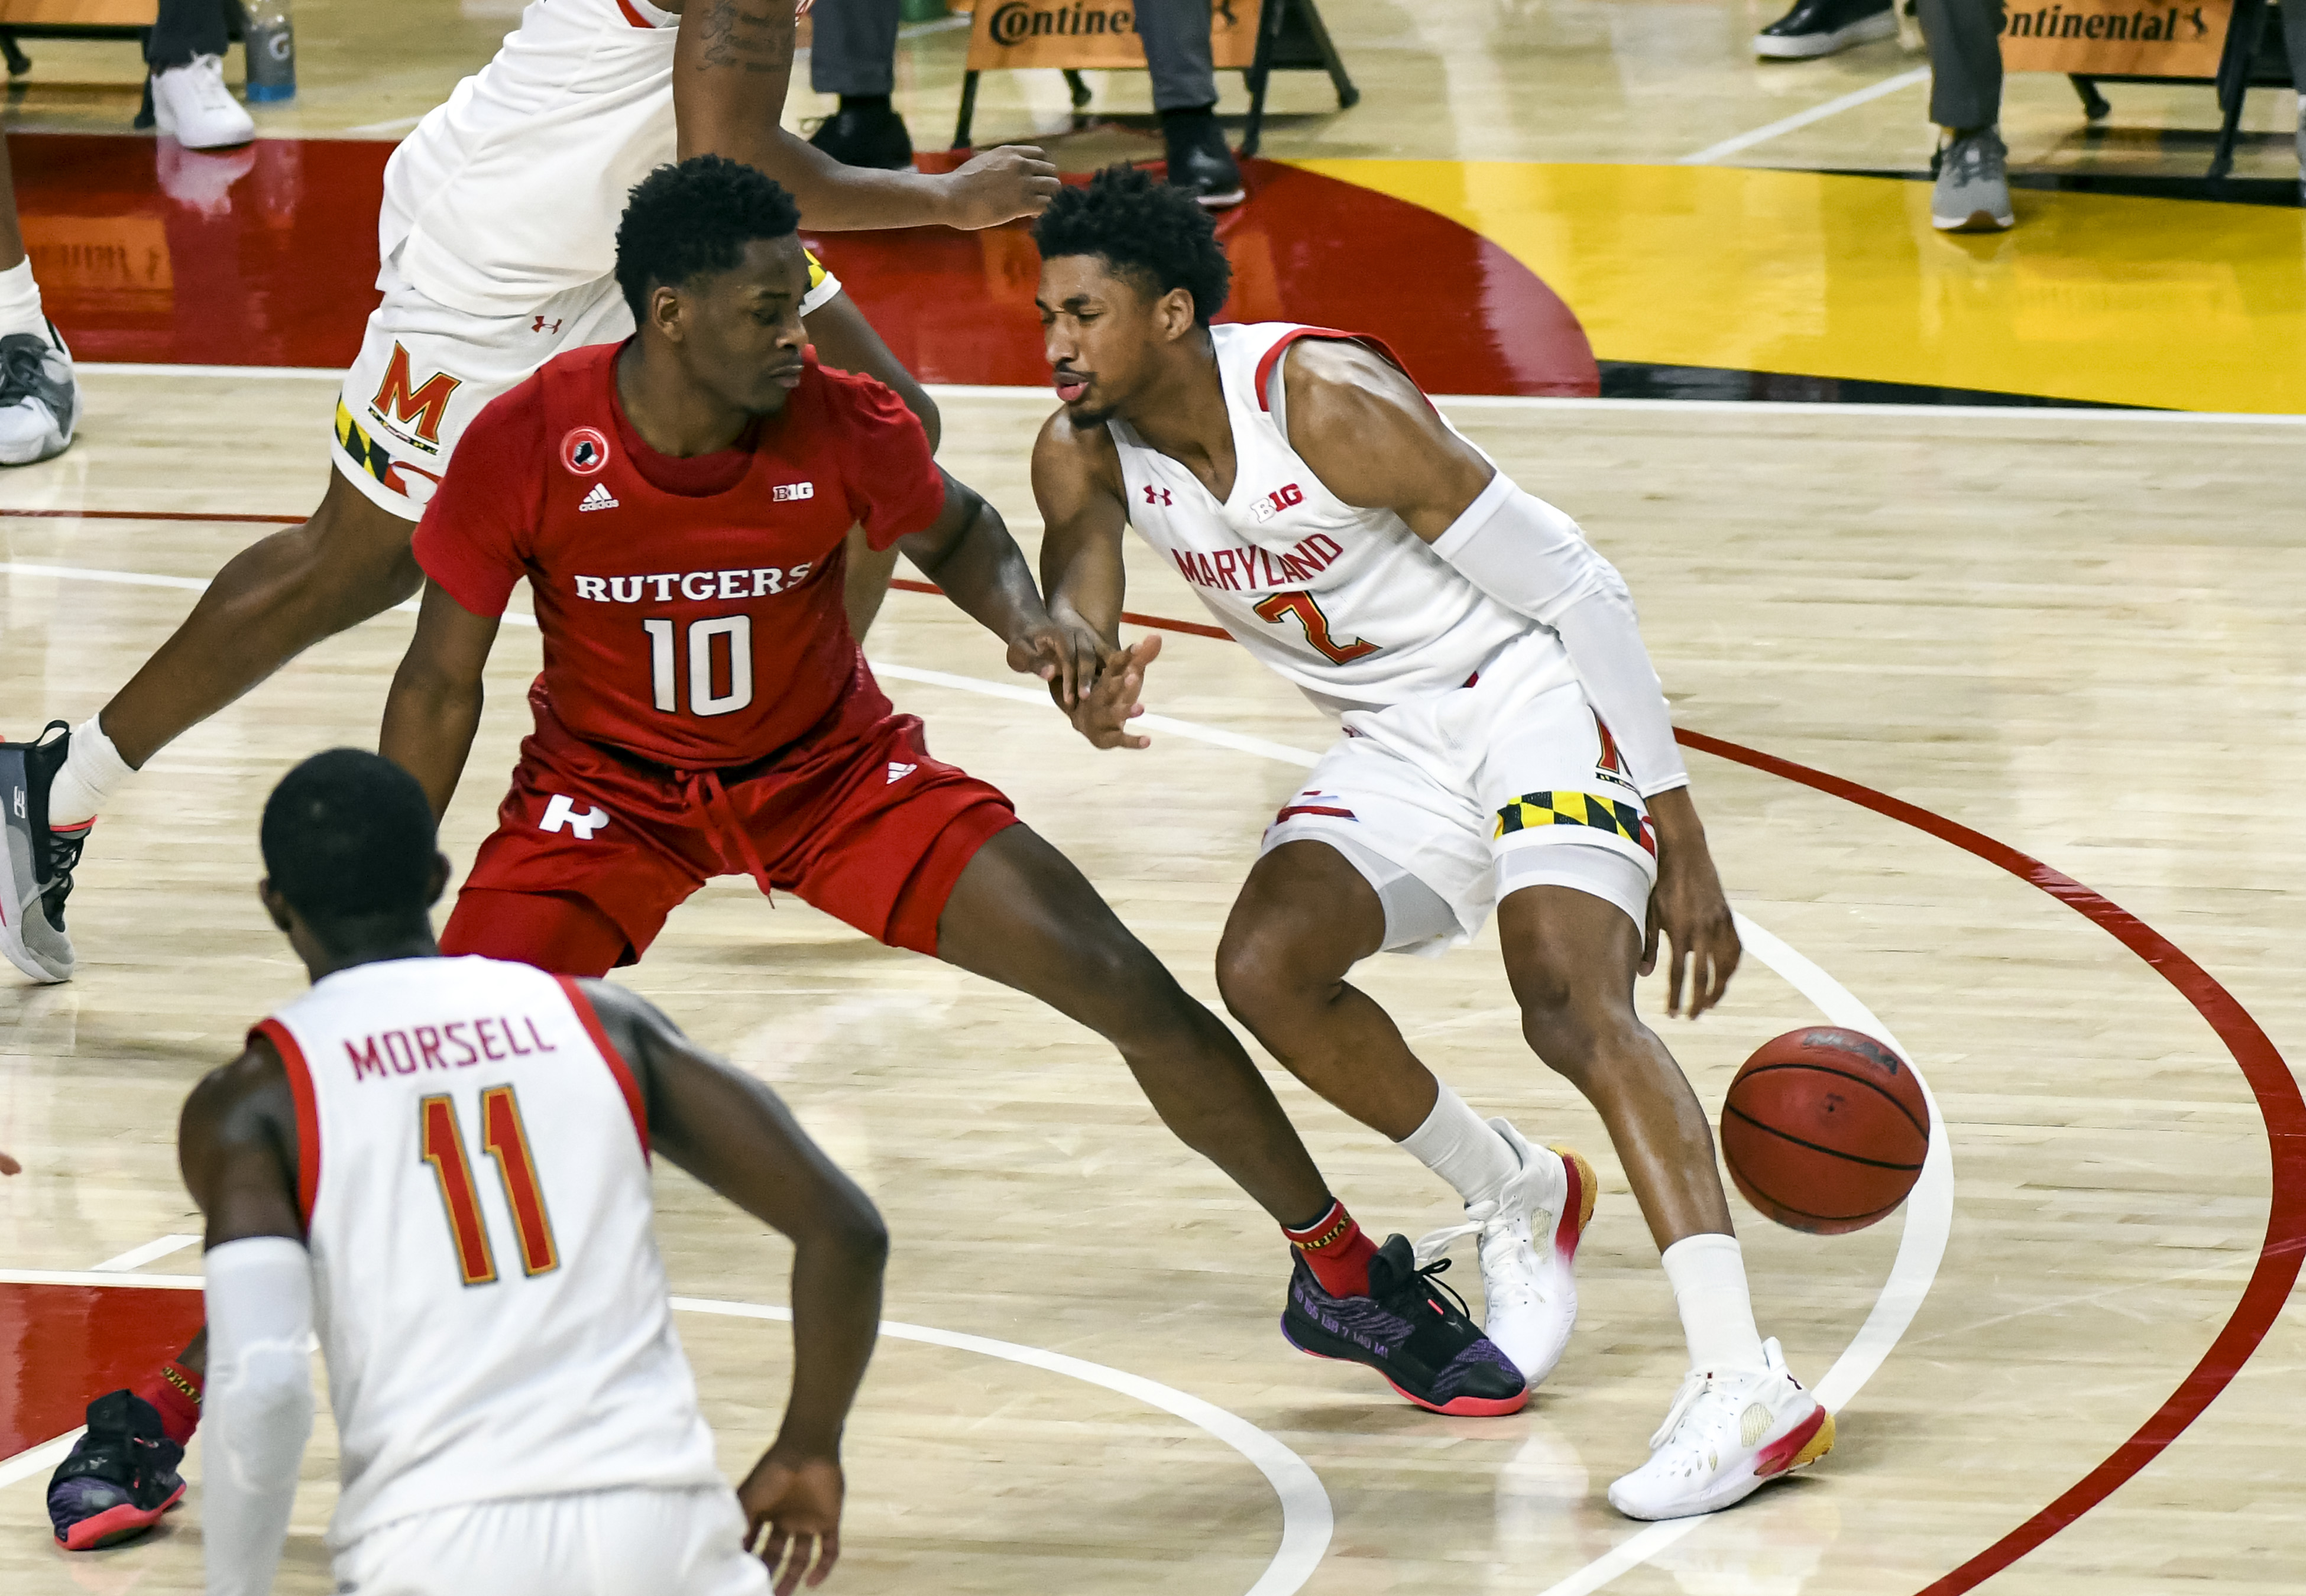 COLLEGE BASKETBALL: DEC 14 Rutgers at Maryland